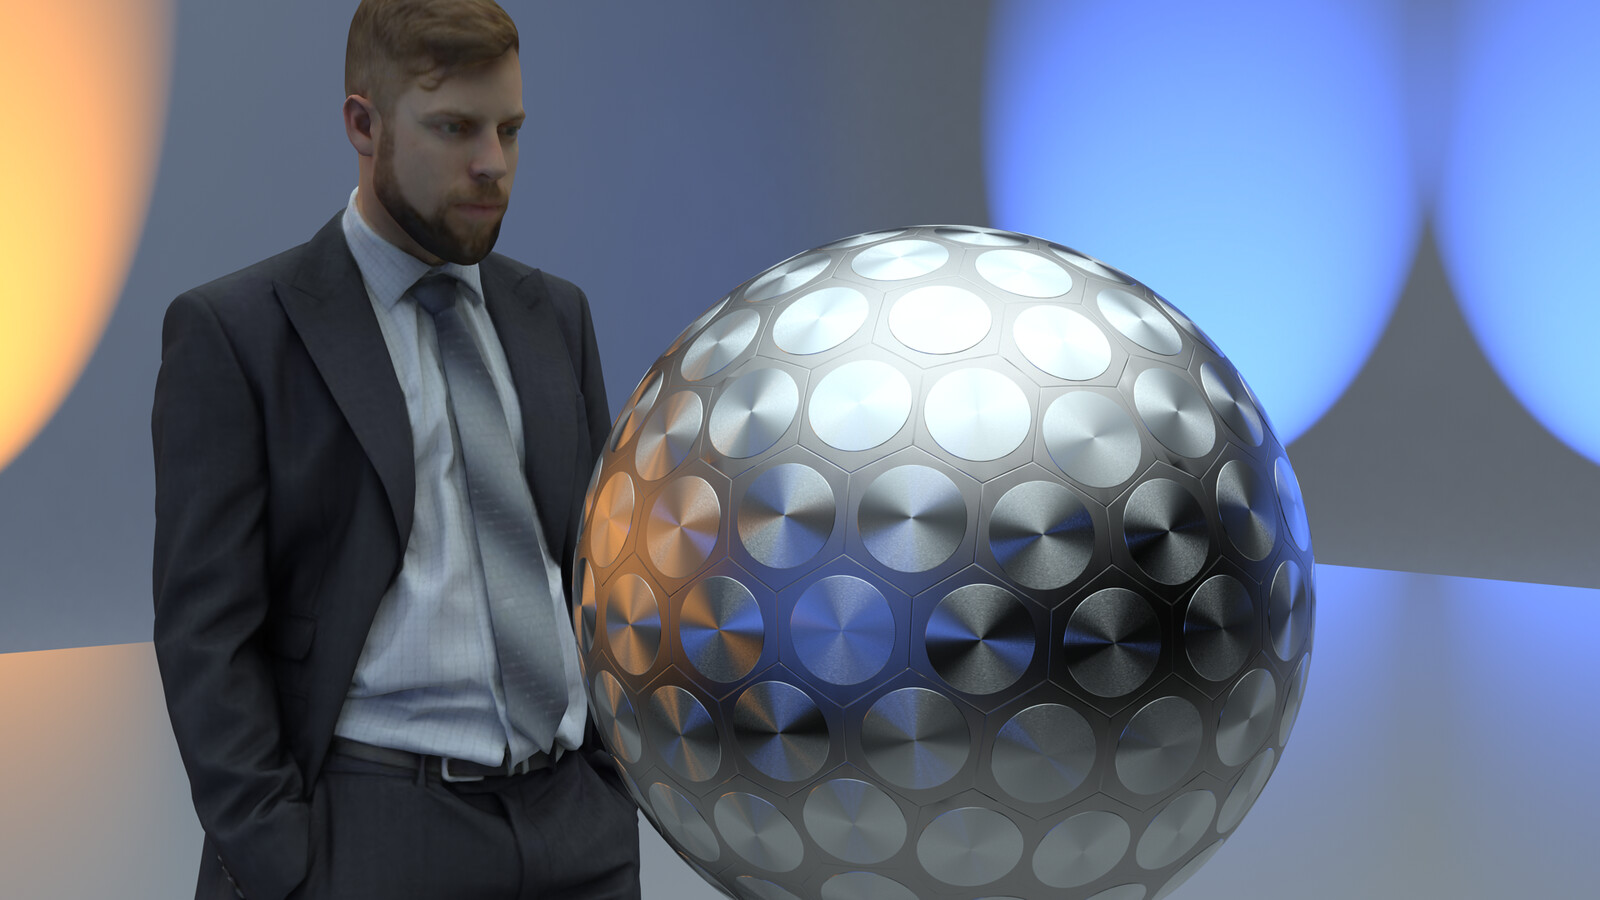 """SU 2016 + Thea Render Bomb-Geodesic Sphere 2 Oct 2016 WIP DPRK """"disco ball"""" miniaturised boosted fission bomb"""